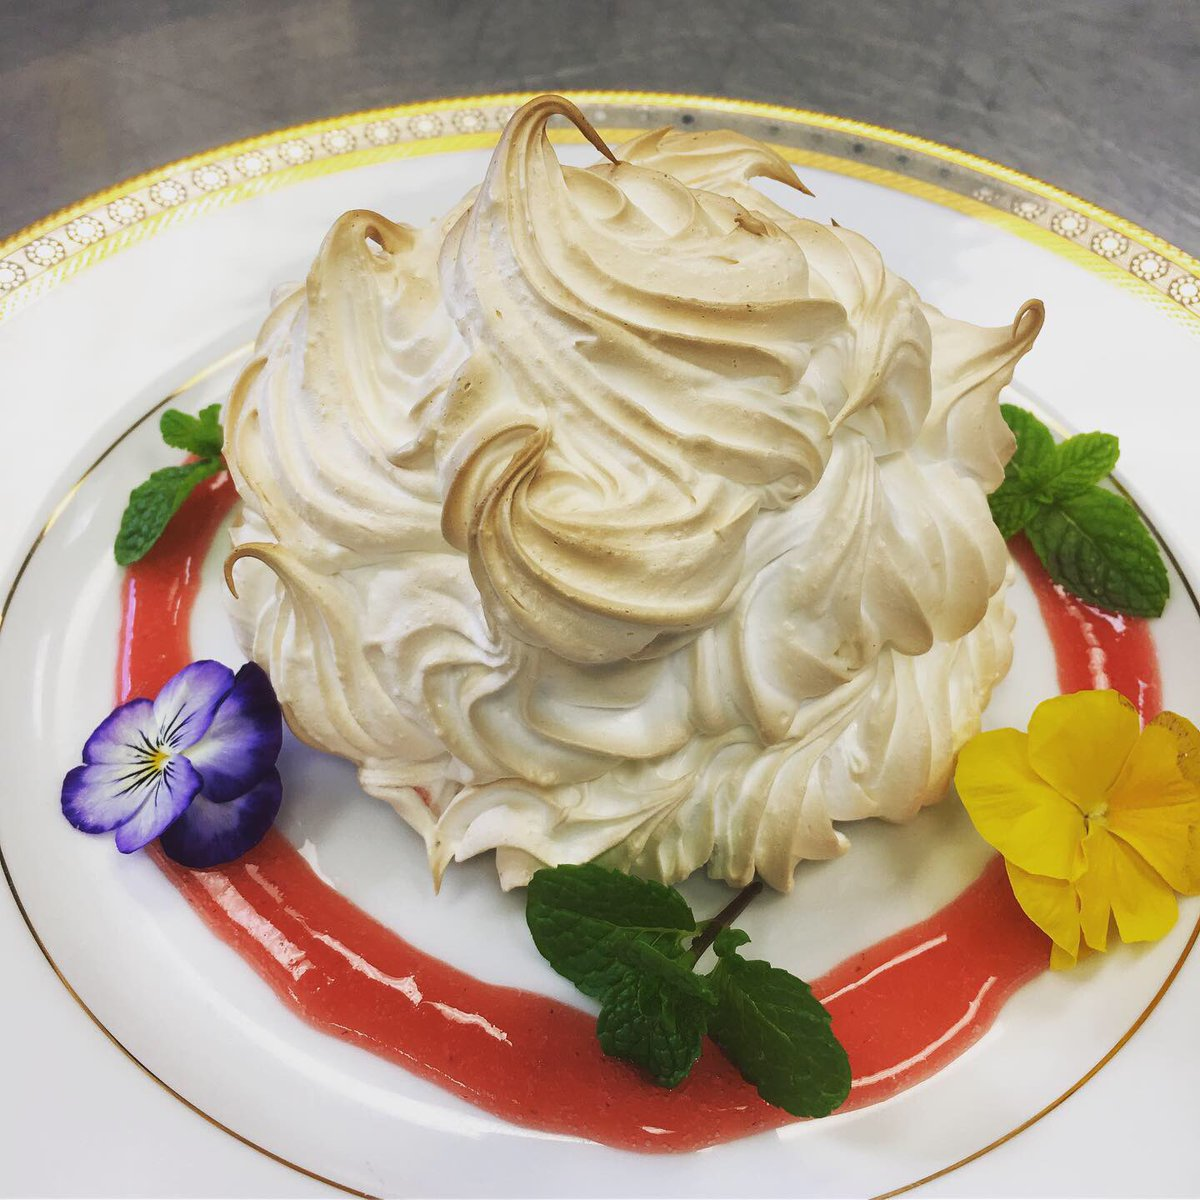 Swiss Embassy On Twitter For Tasteofholidays We Presented The Bakedalaska Did You Know The Famous Swiss Family Delmonico Created This Dessert When The Us Bought Unknown Territory Alaska Full Recipe And Story